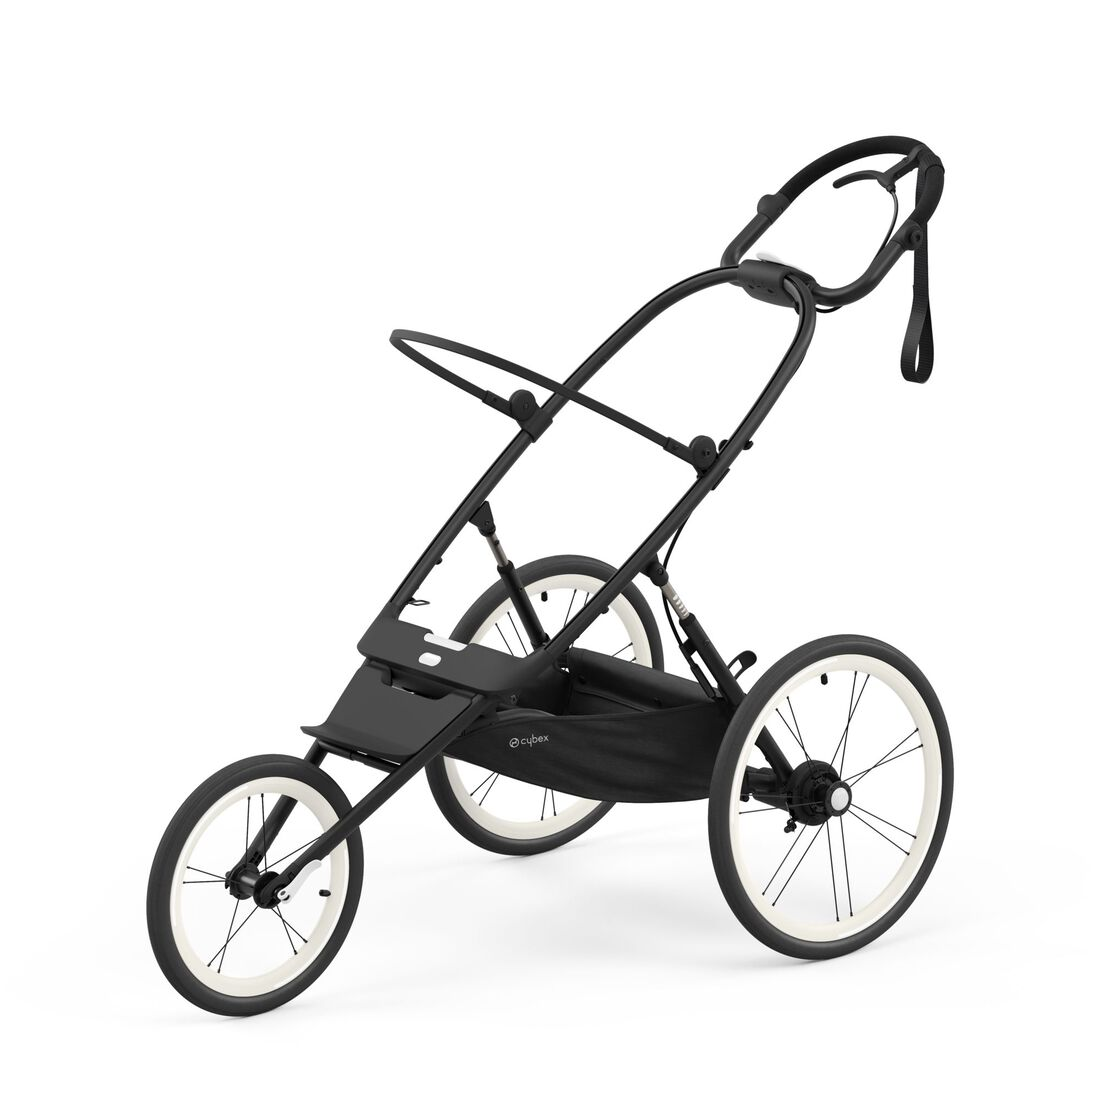 CYBEX Avi One Box - All Black in All Black large image number 4